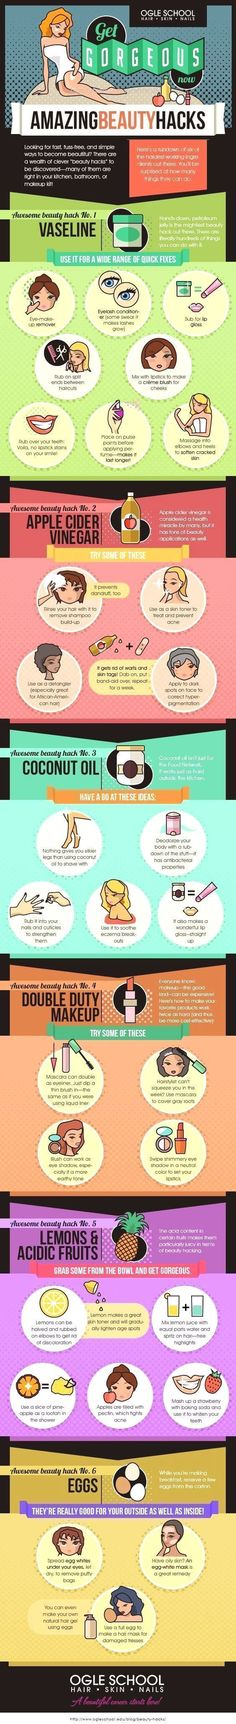 10 Amazing DIY Beauty Infographics to Use Before the Wedding – MODwedding  Unconventional Beauty Secrets. The Ogle School breaks down some of the most useful beauty hacks that you can access right in your home.:  http://www.beautyfashionfragrance.us/2017/05/25/10-amazing-diy-beauty-infographics-to-use-before-the-wedding-modwedding/ #homeschoolinginfographic